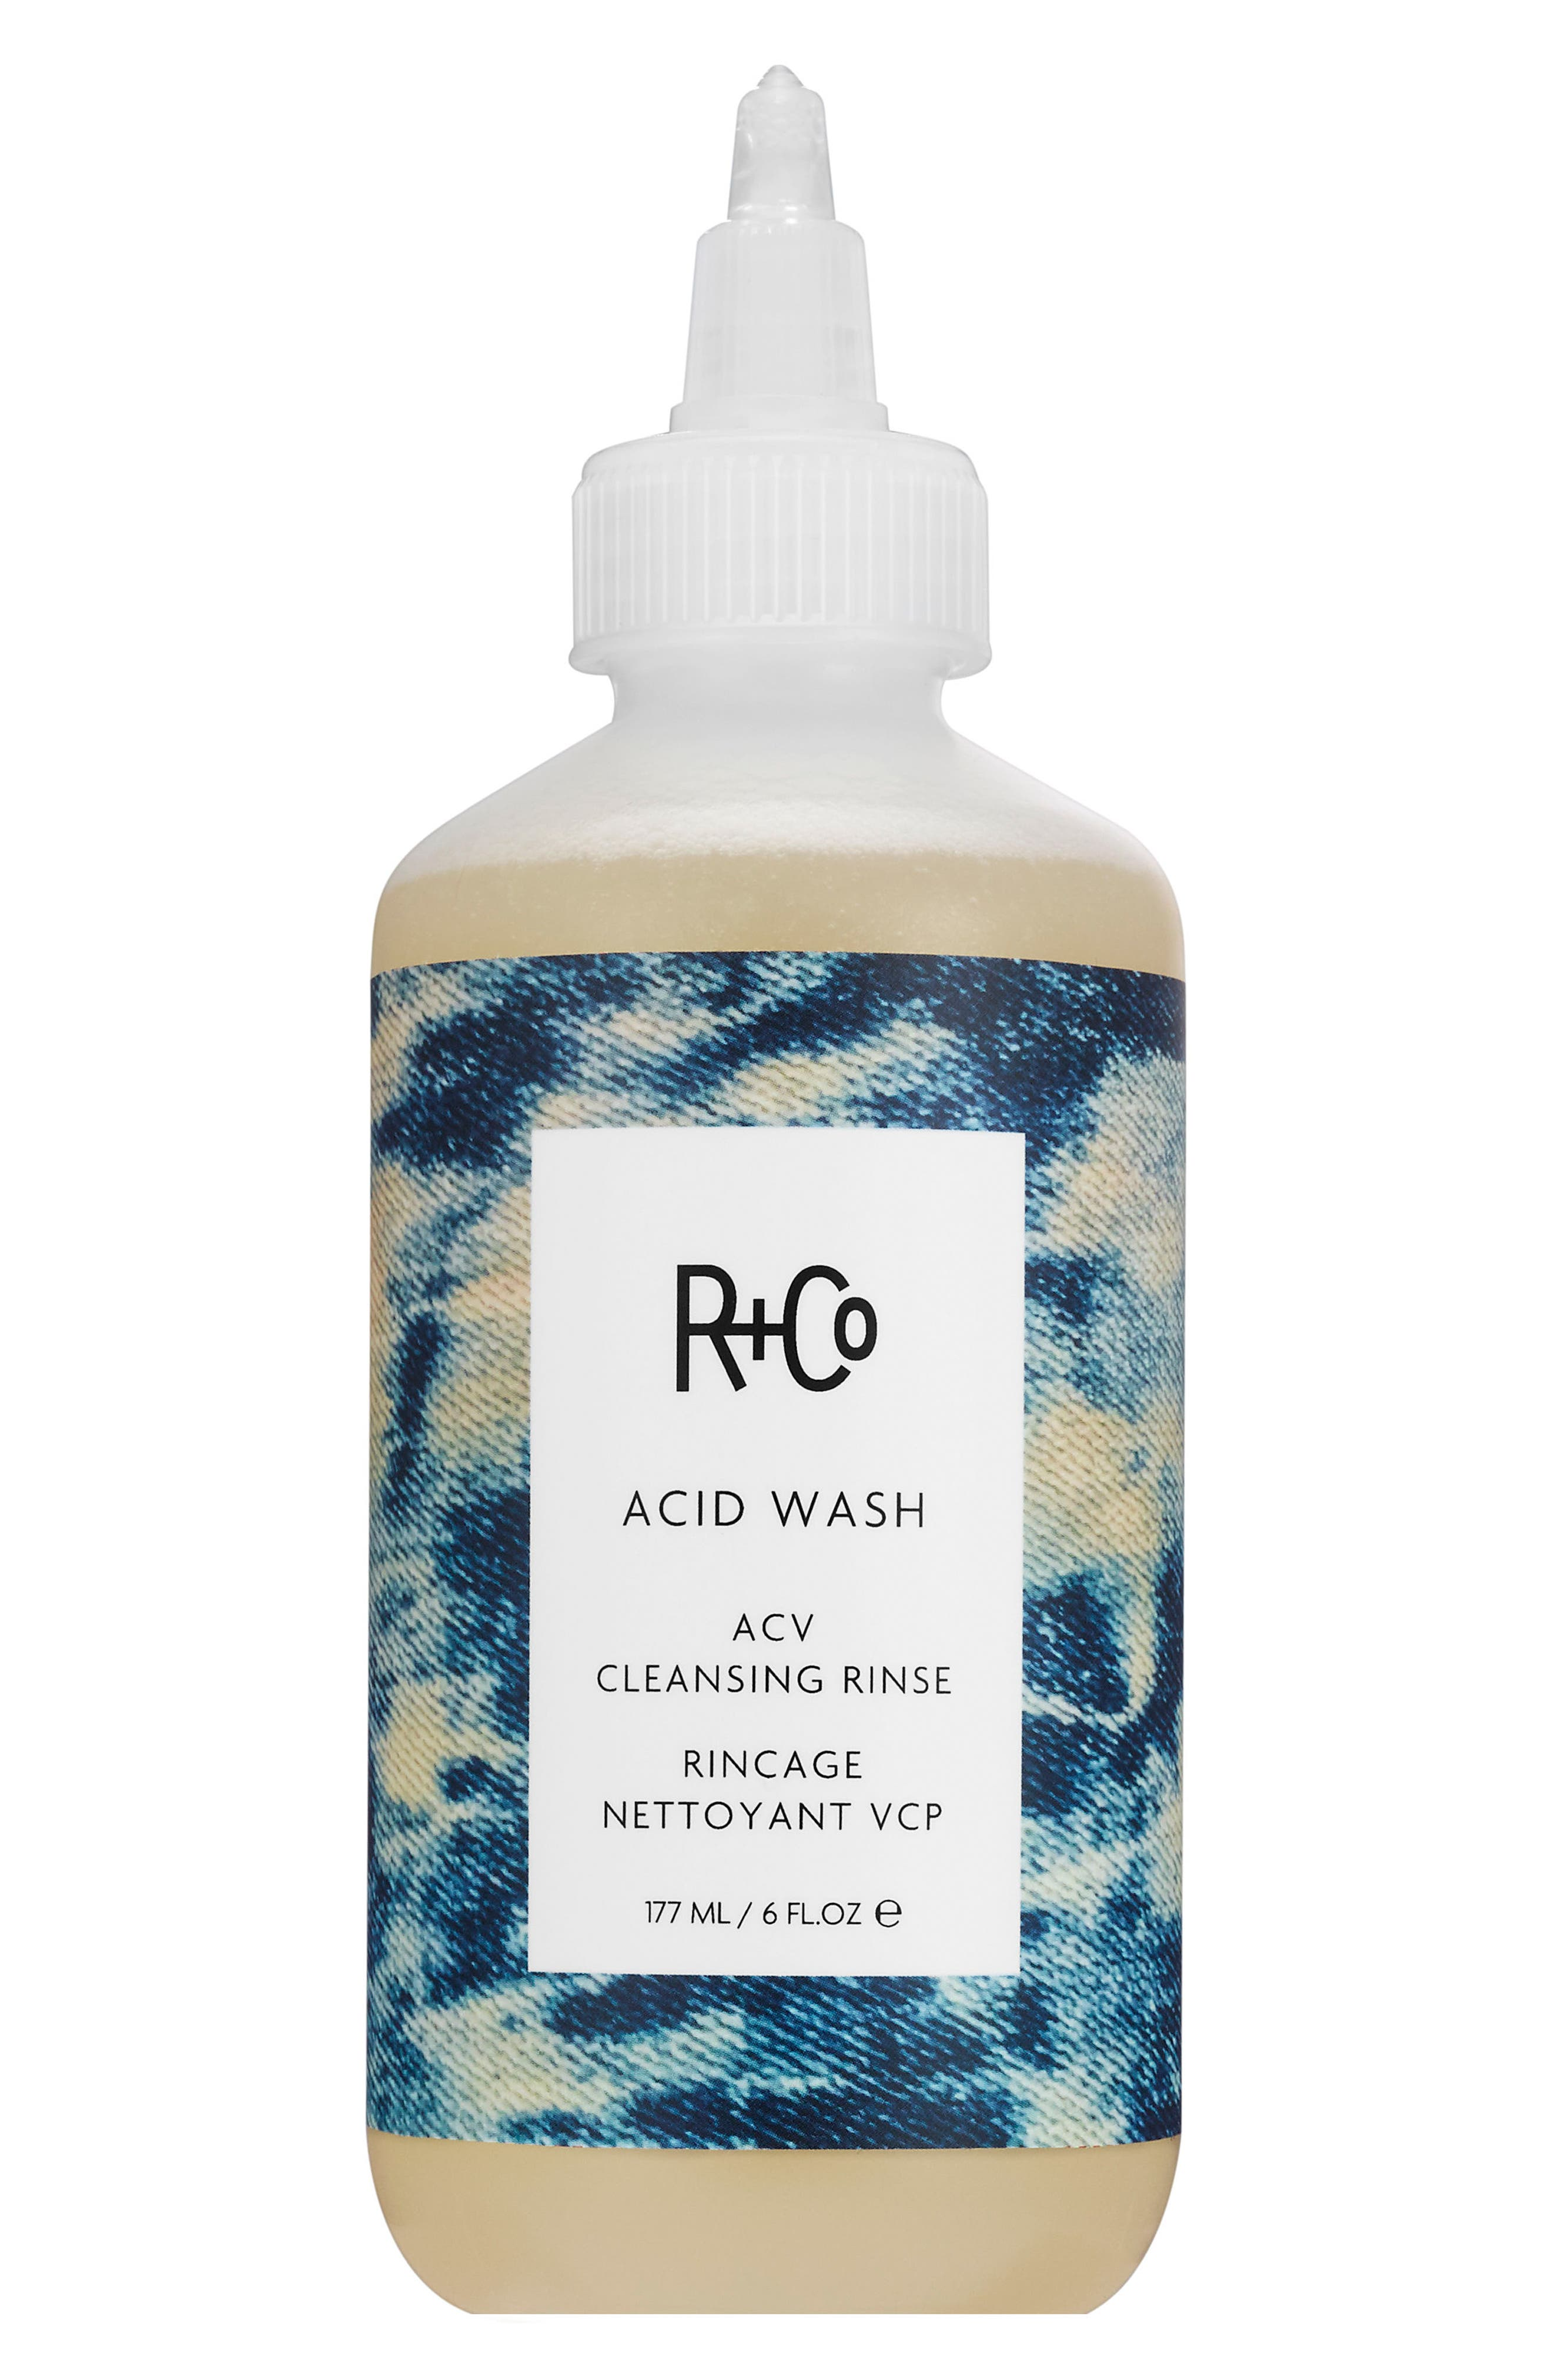 SPACE.NK.apothecary R+Co Acid Wash ACV Cleansing Rinse